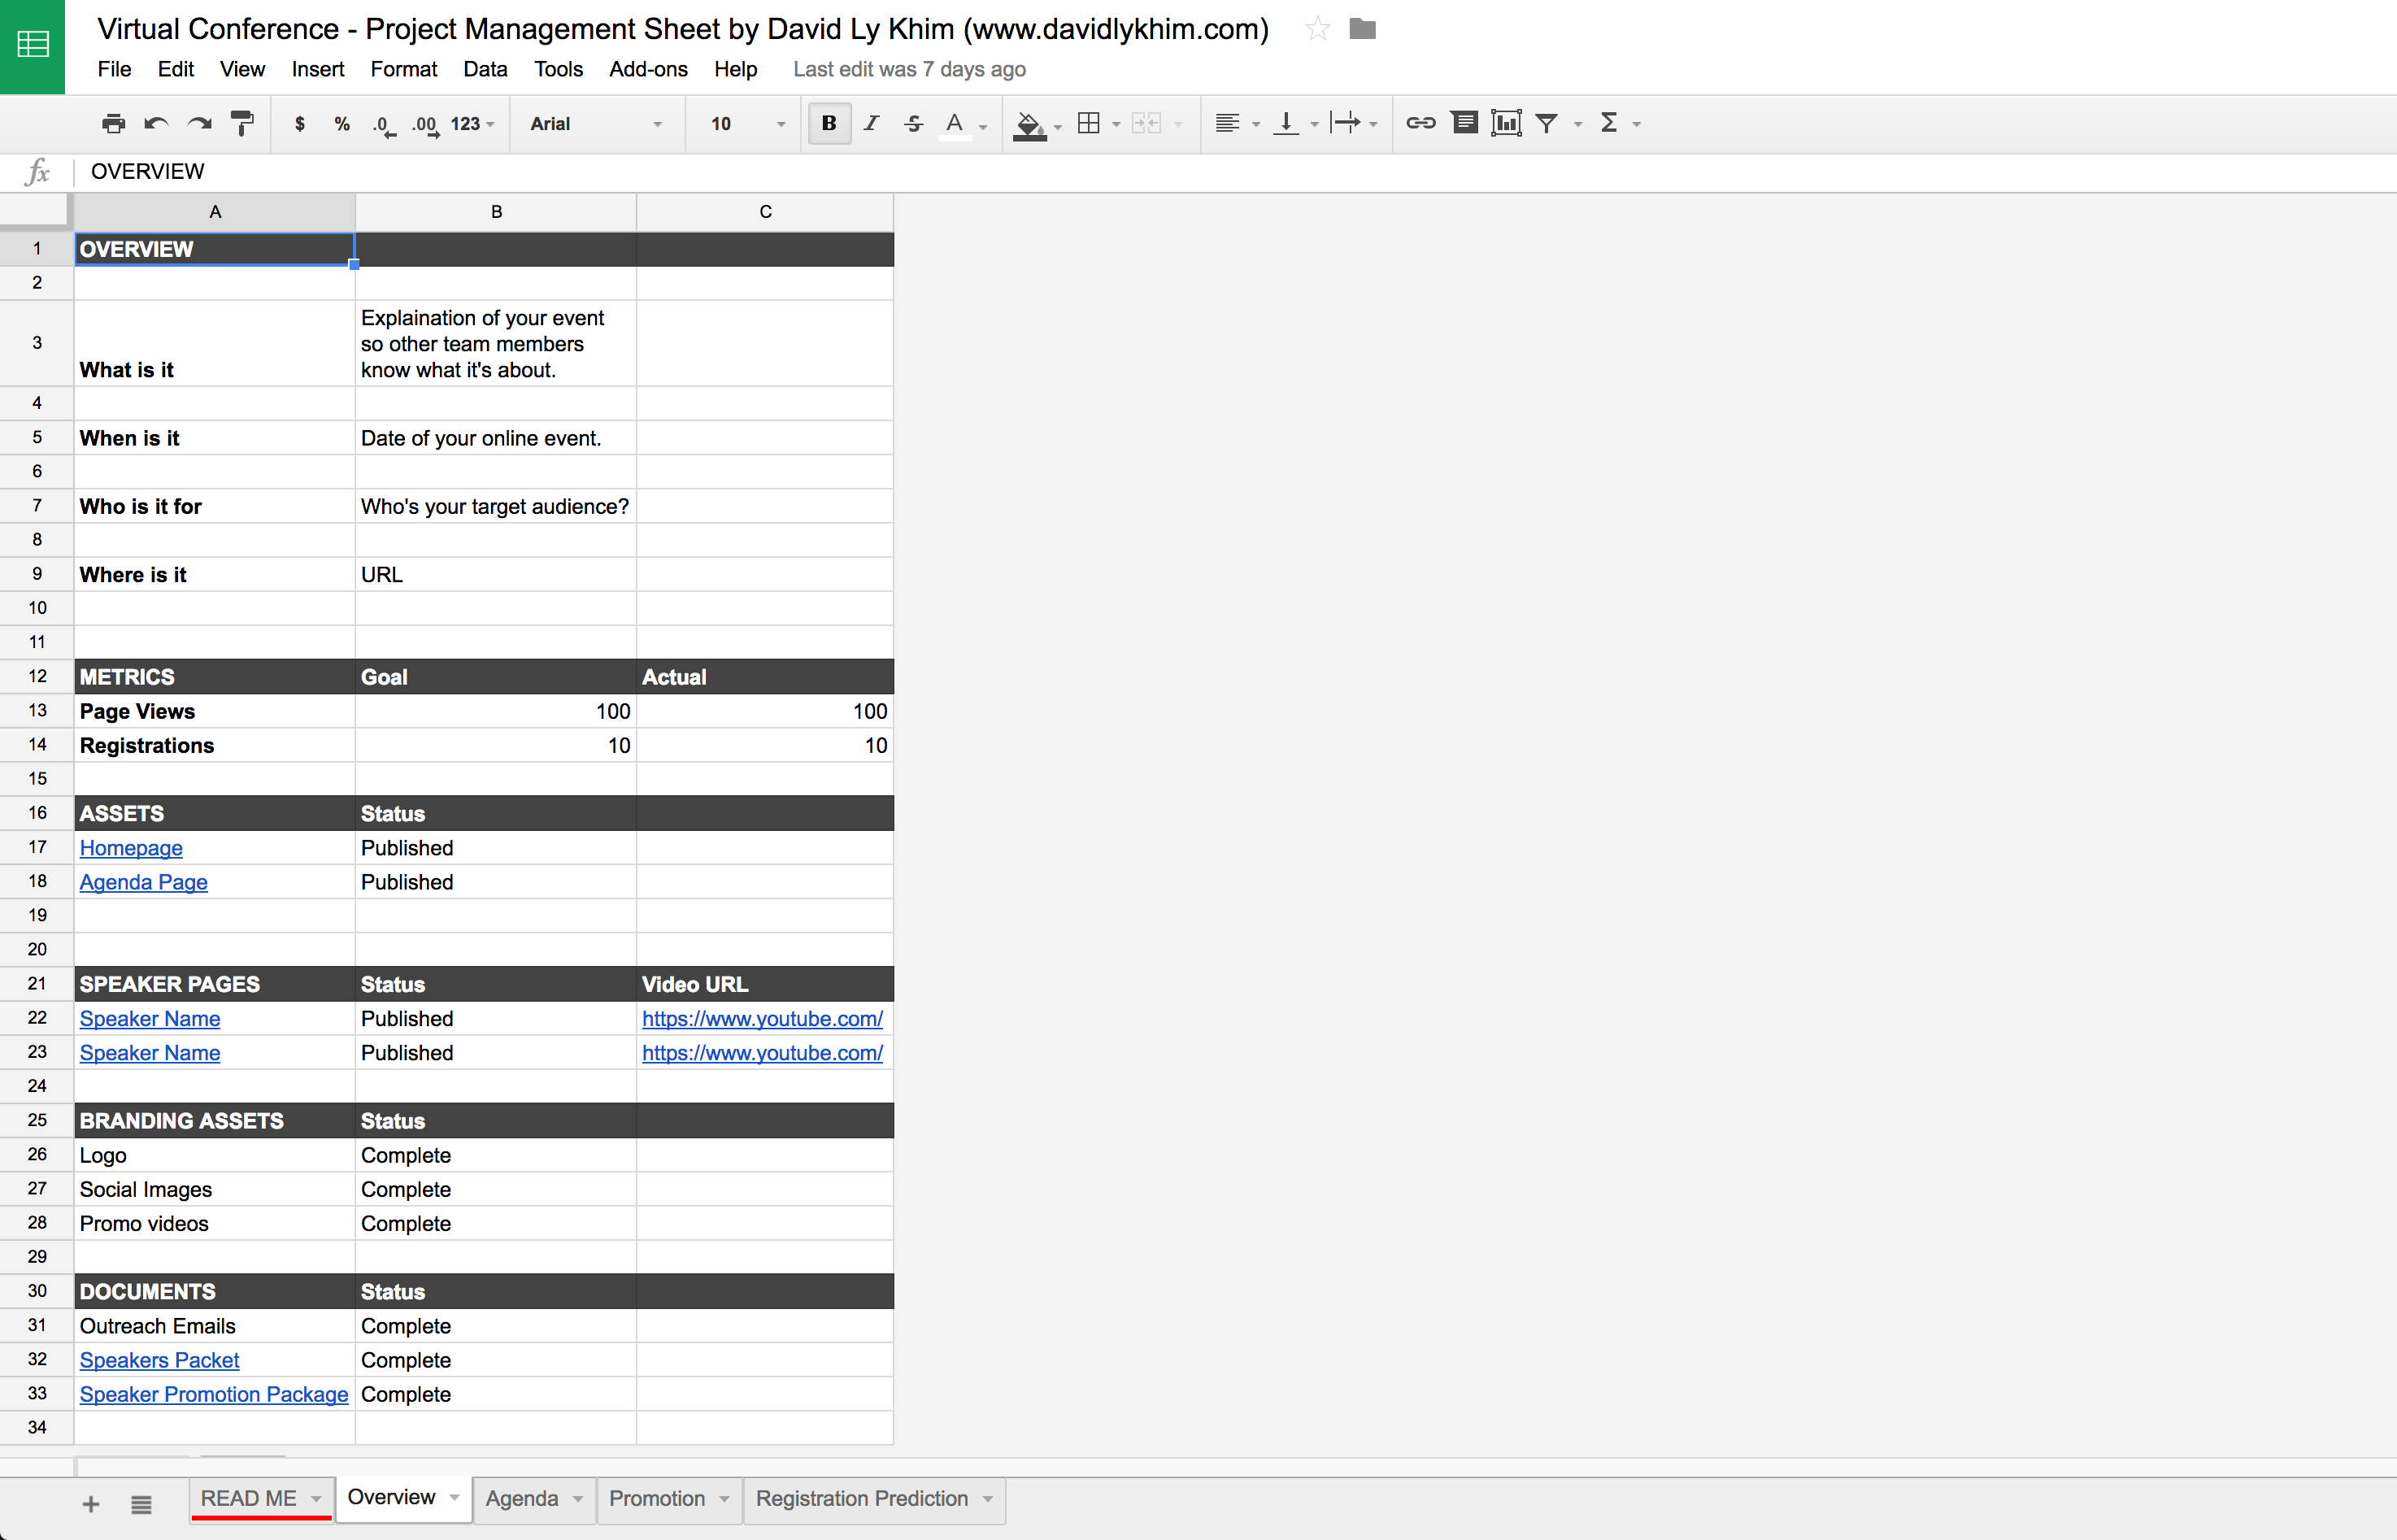 virtual-conference-how-to-host-asset-management-spreadsheet-template-sample.png